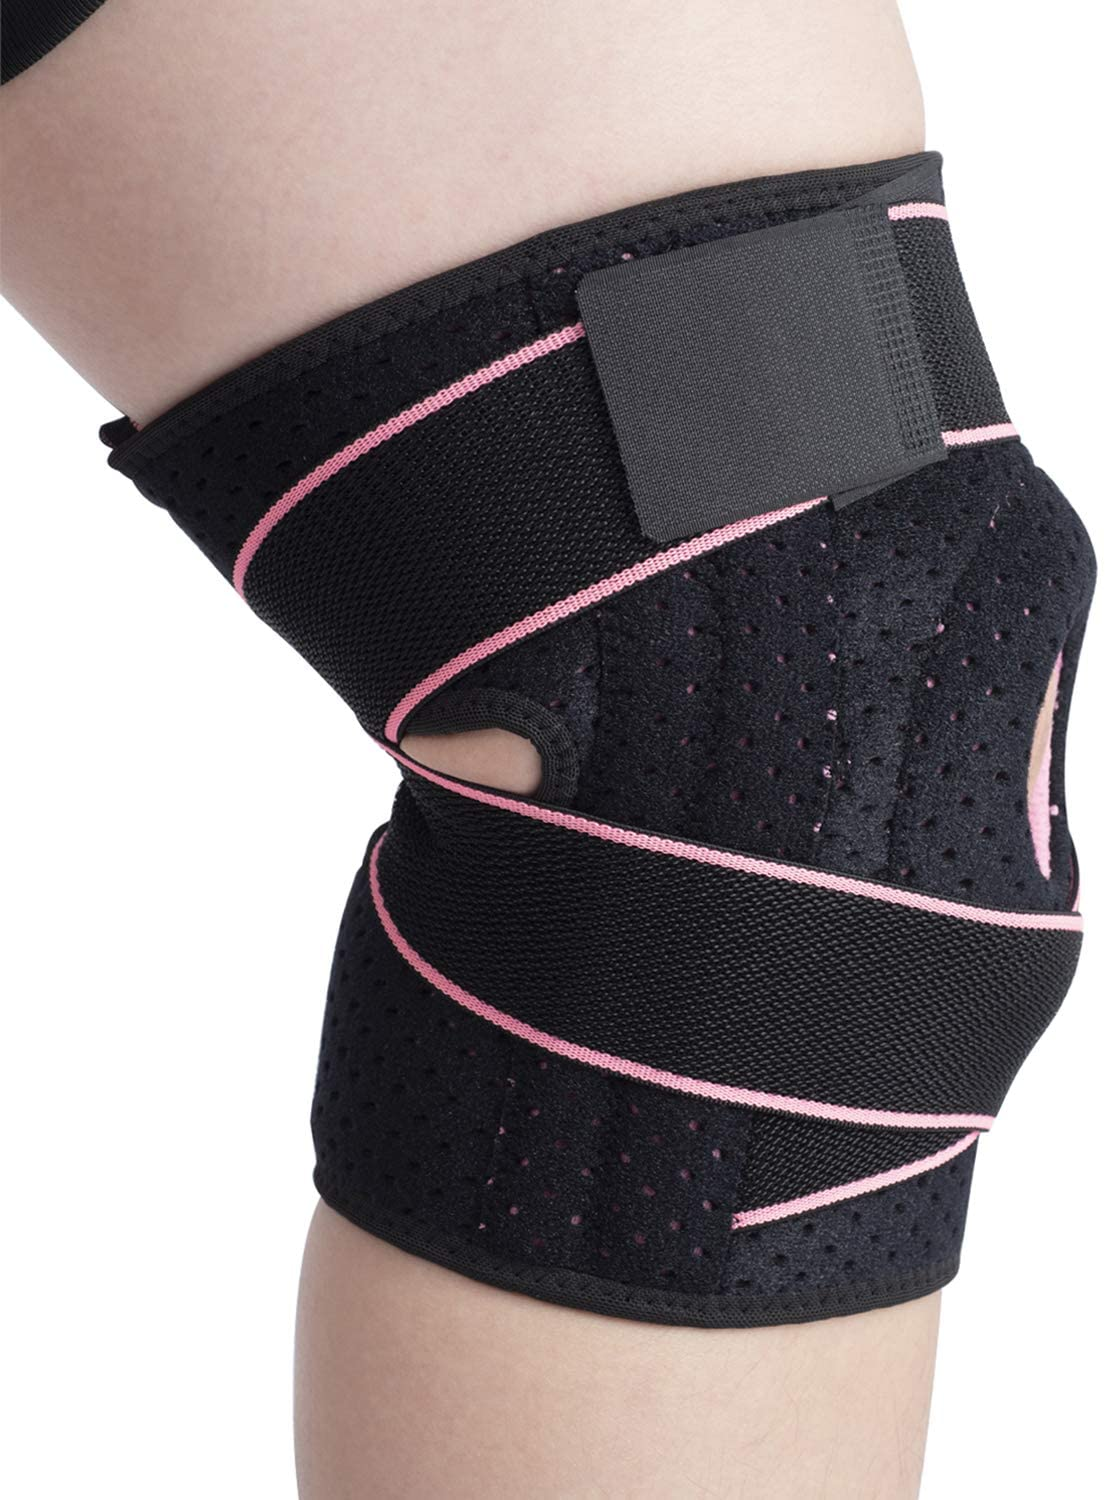 Knee Brace Support with Side Stabilizers & Patella Gel Pads - Adjustable Compression Open Patella Relieves Arthritis,Meniscus Tear,ACL,MCL,Tendonitis Pain for Men and Women (Pink,Pack of 1)